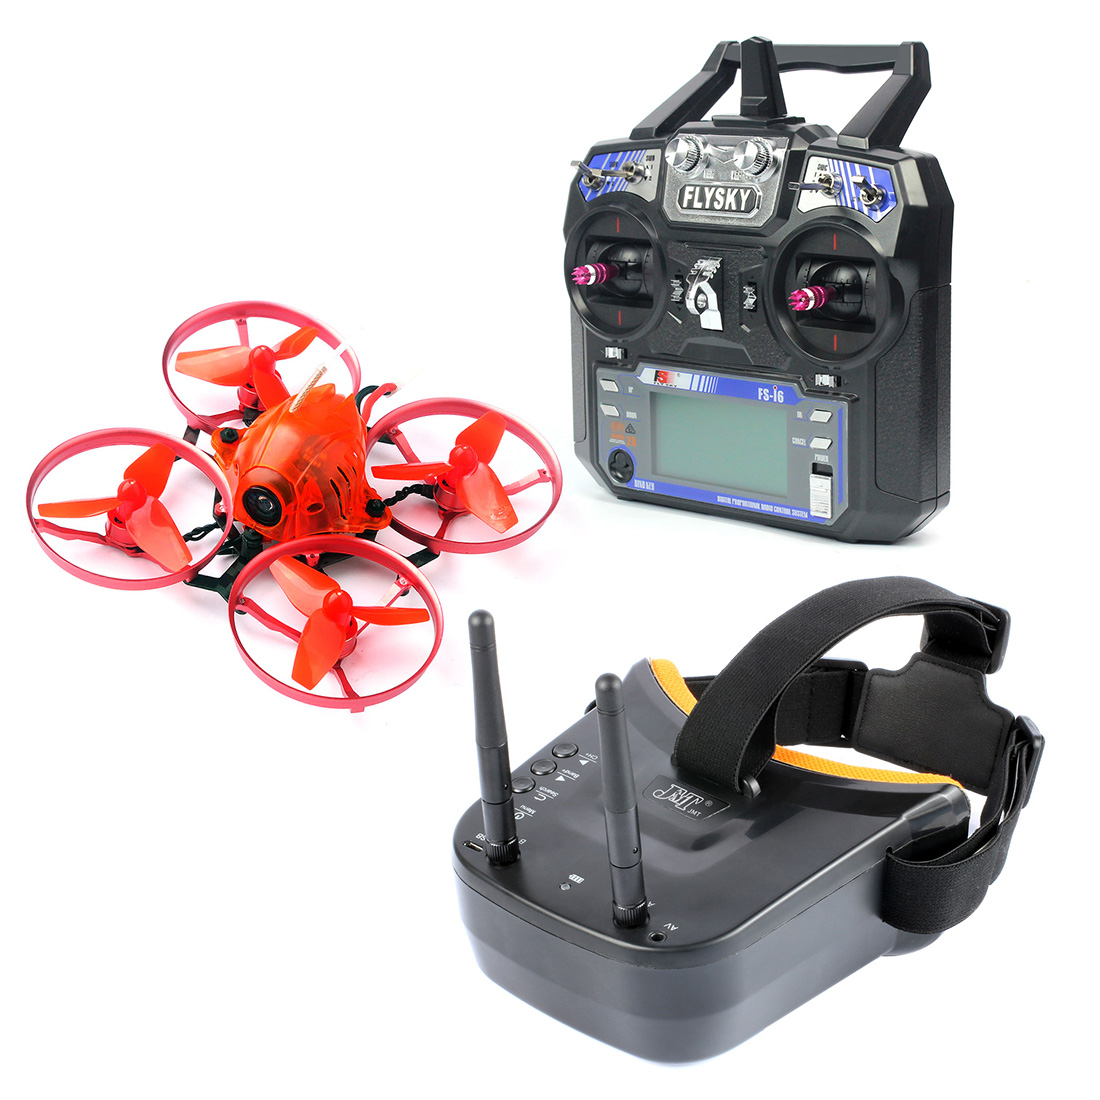 Snapper7 Brushless Micro 75mm 5.8G FPV Racer Drone 2.4G 6CH RC Helicopter RTF 700TVL Camera VTX & Double Antenna Mini Goggles